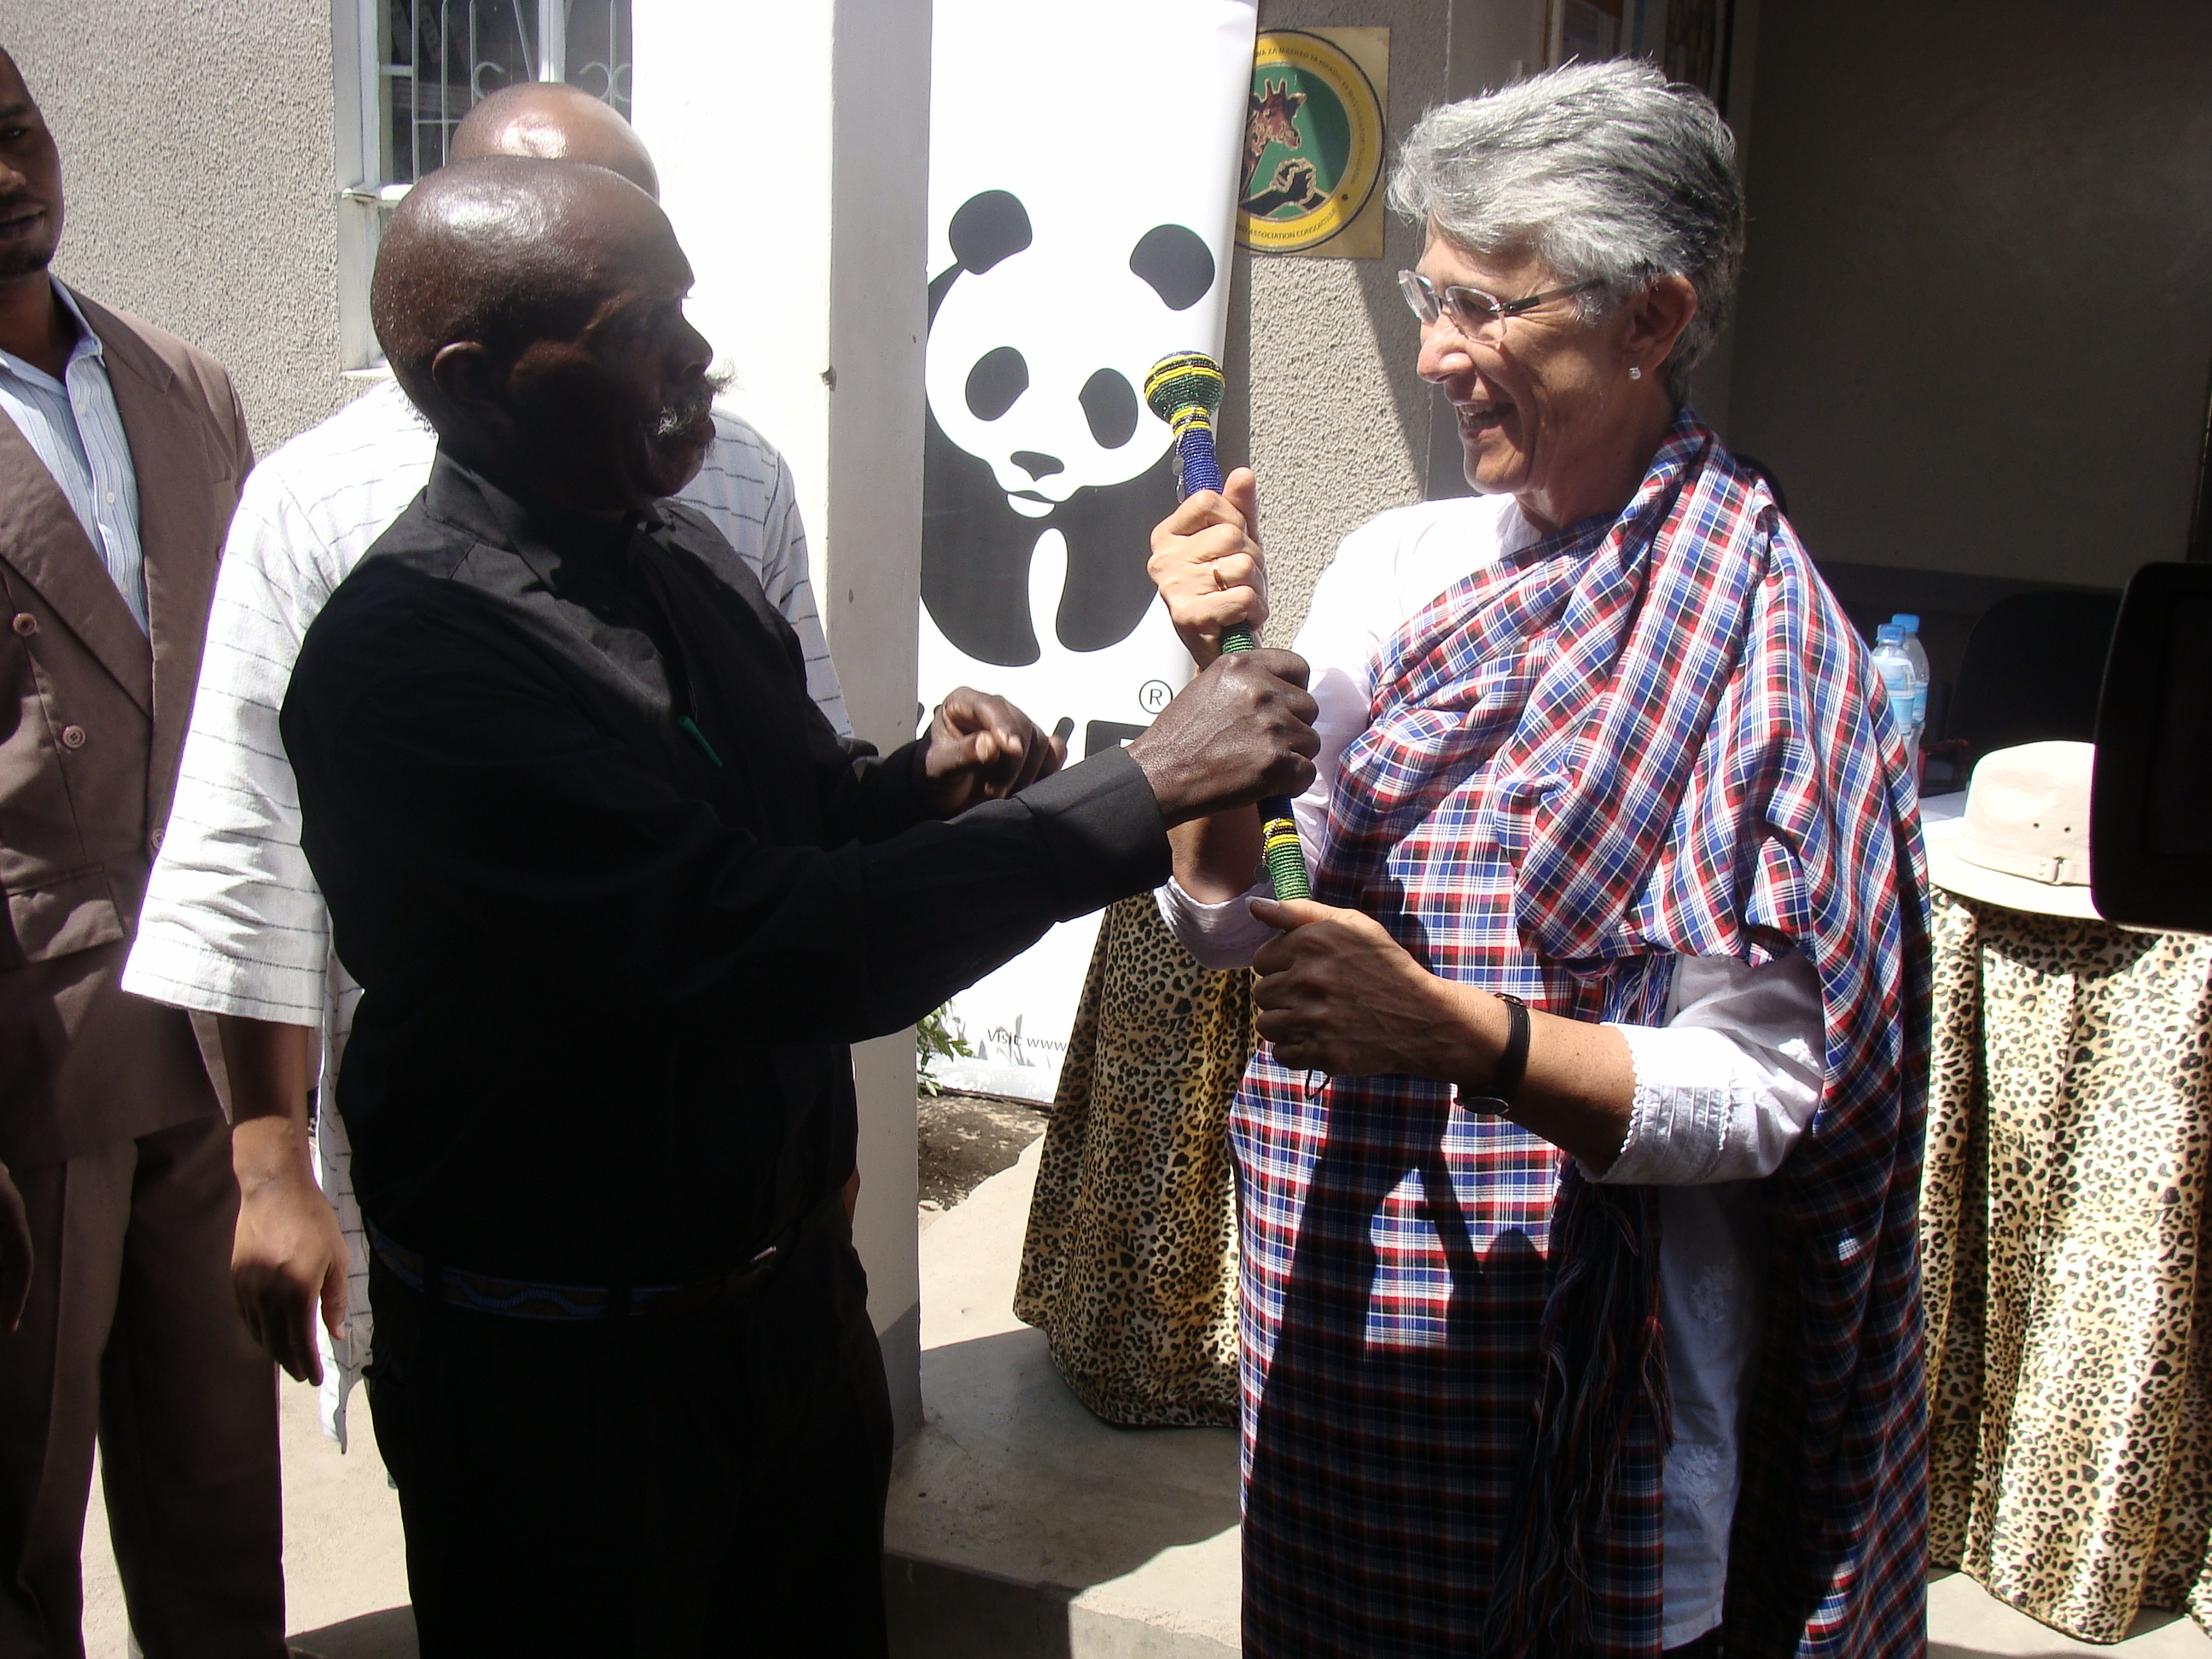 WWF International President, Yolanda Kakabadse appreciated by members of Wildlife Management Areas- WMAs in Tanzania after awarding them with WWF Leaders for a Living Planet